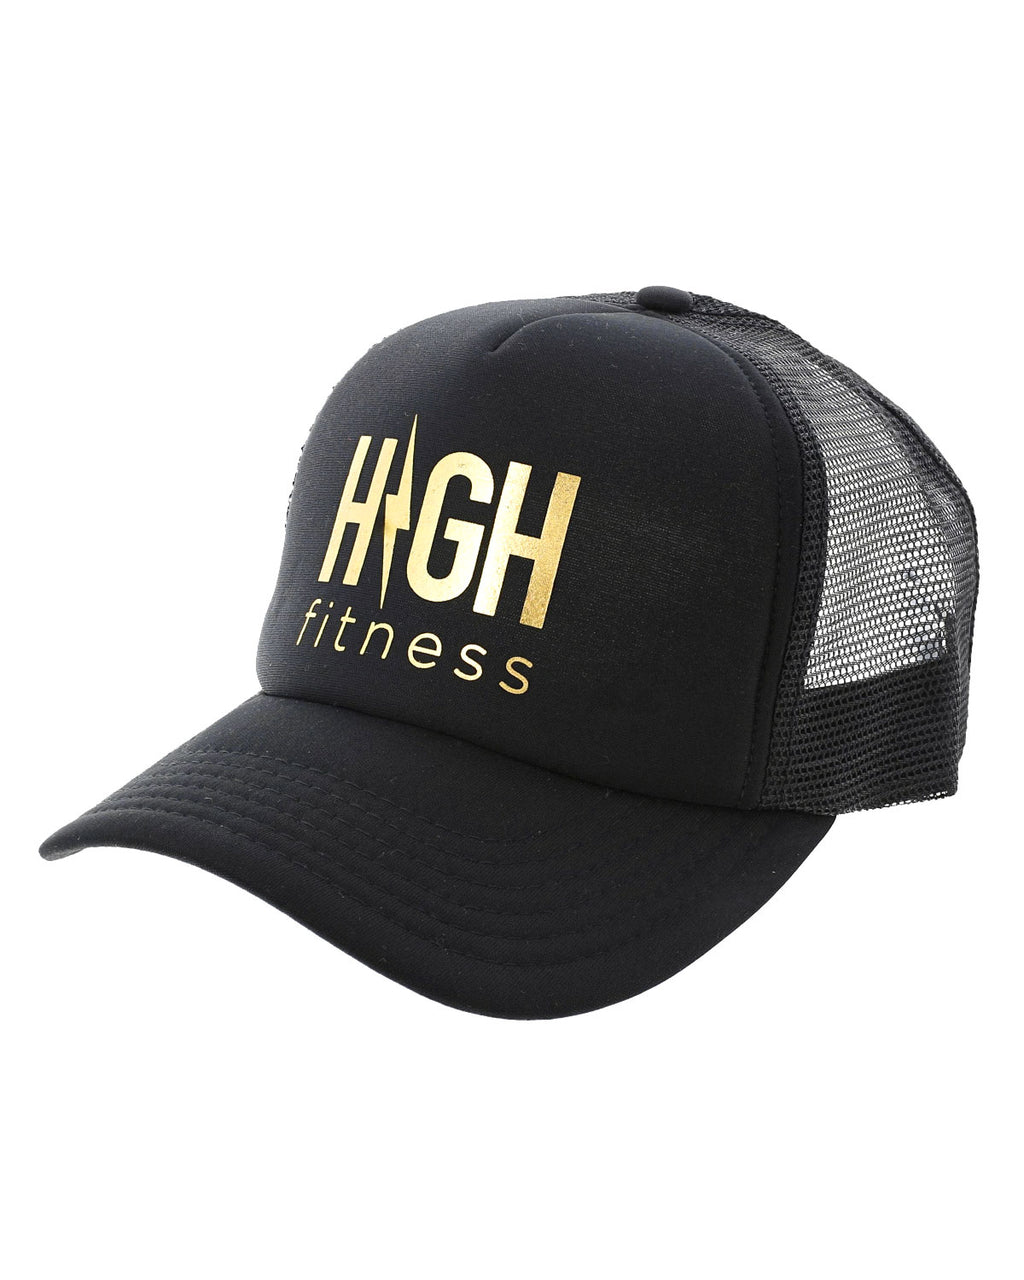 Black Trucker Hat with Gold Logo